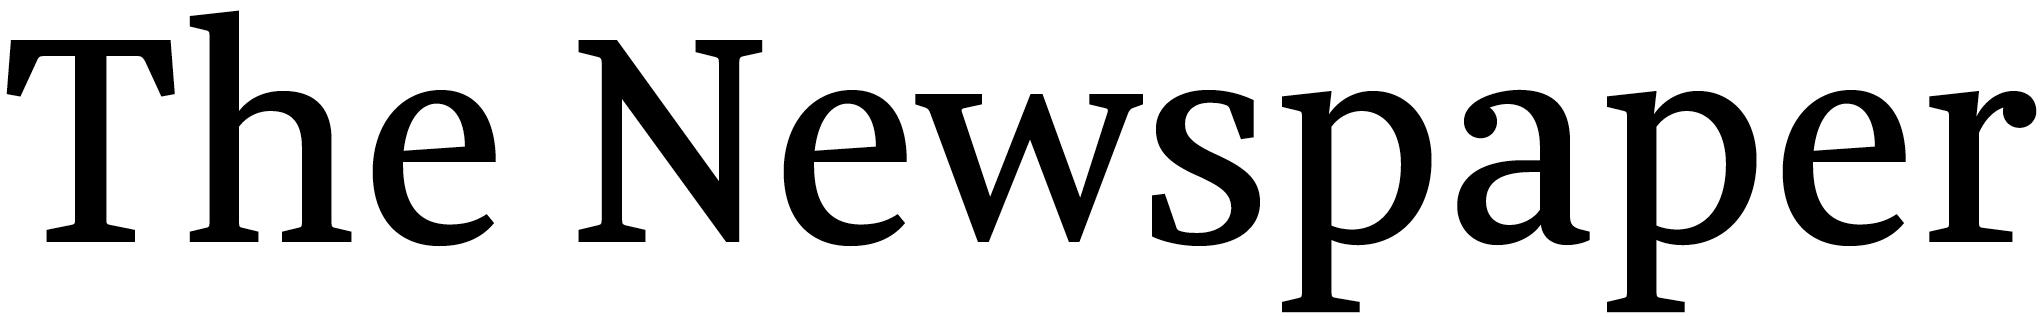 Meret Pro  a powerful newspaper typeface in seven weight from thin to black